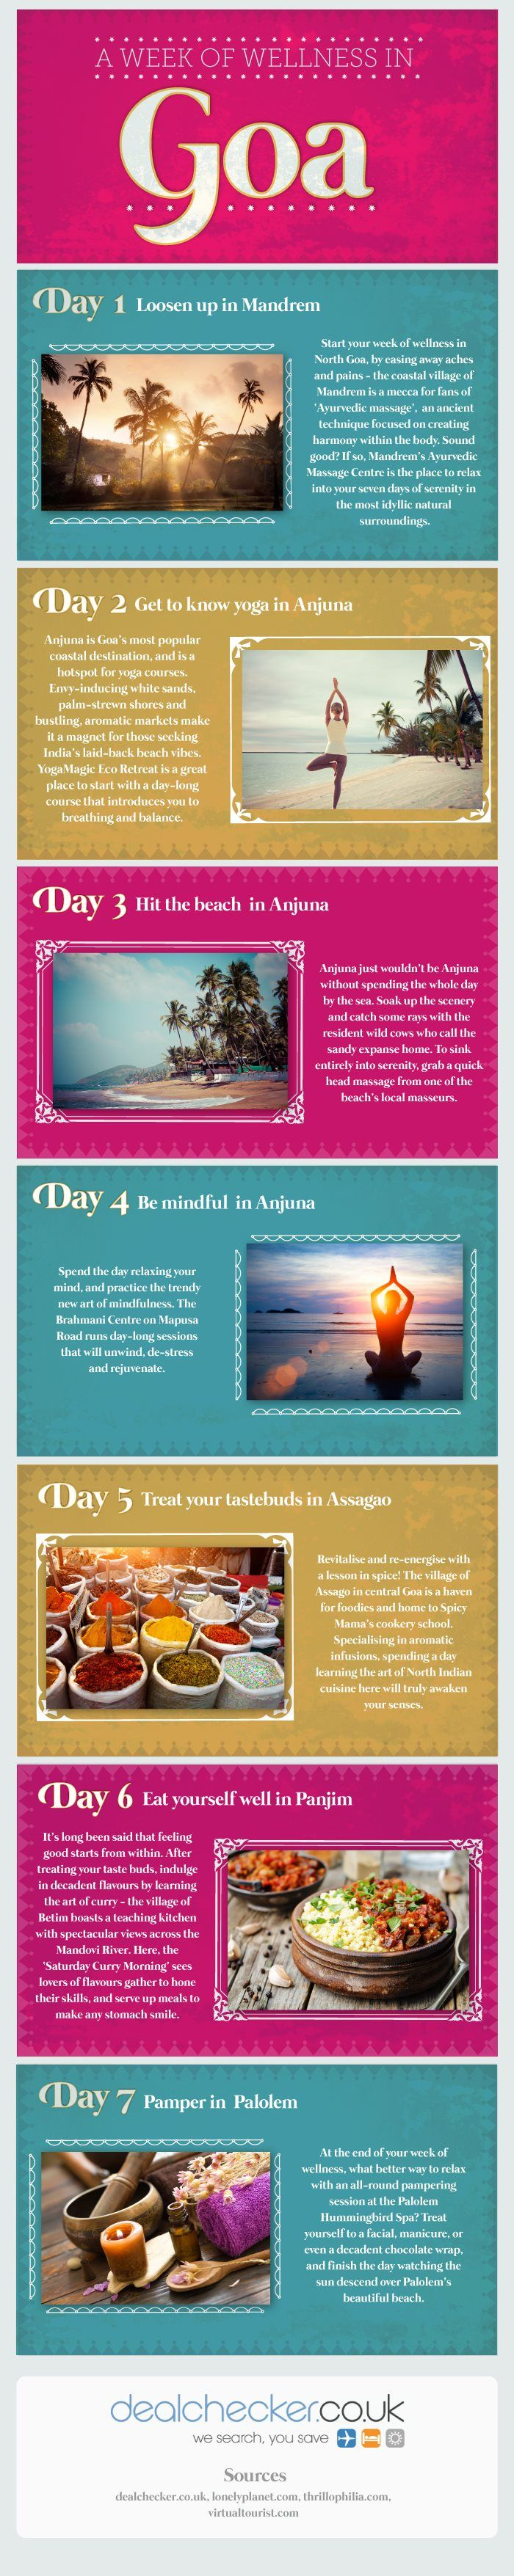 A Week of Wellness in Goa #infographic